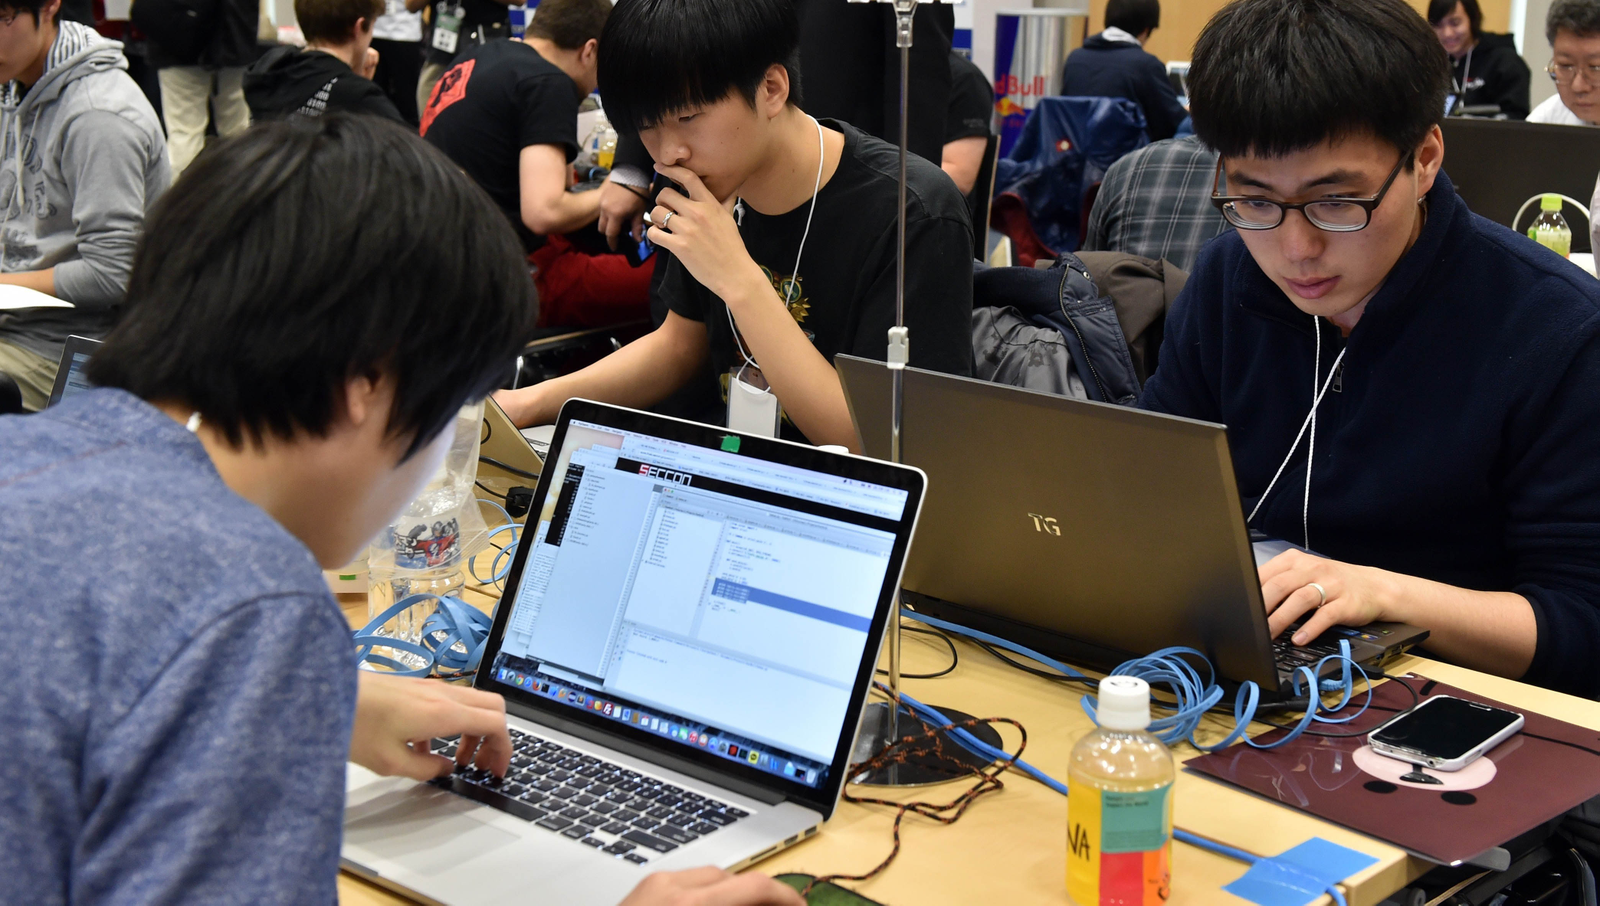 China Unable To Recruit Hackers Fast Enough To Keep Up With Vulnerabilities In U.S. Security Systems